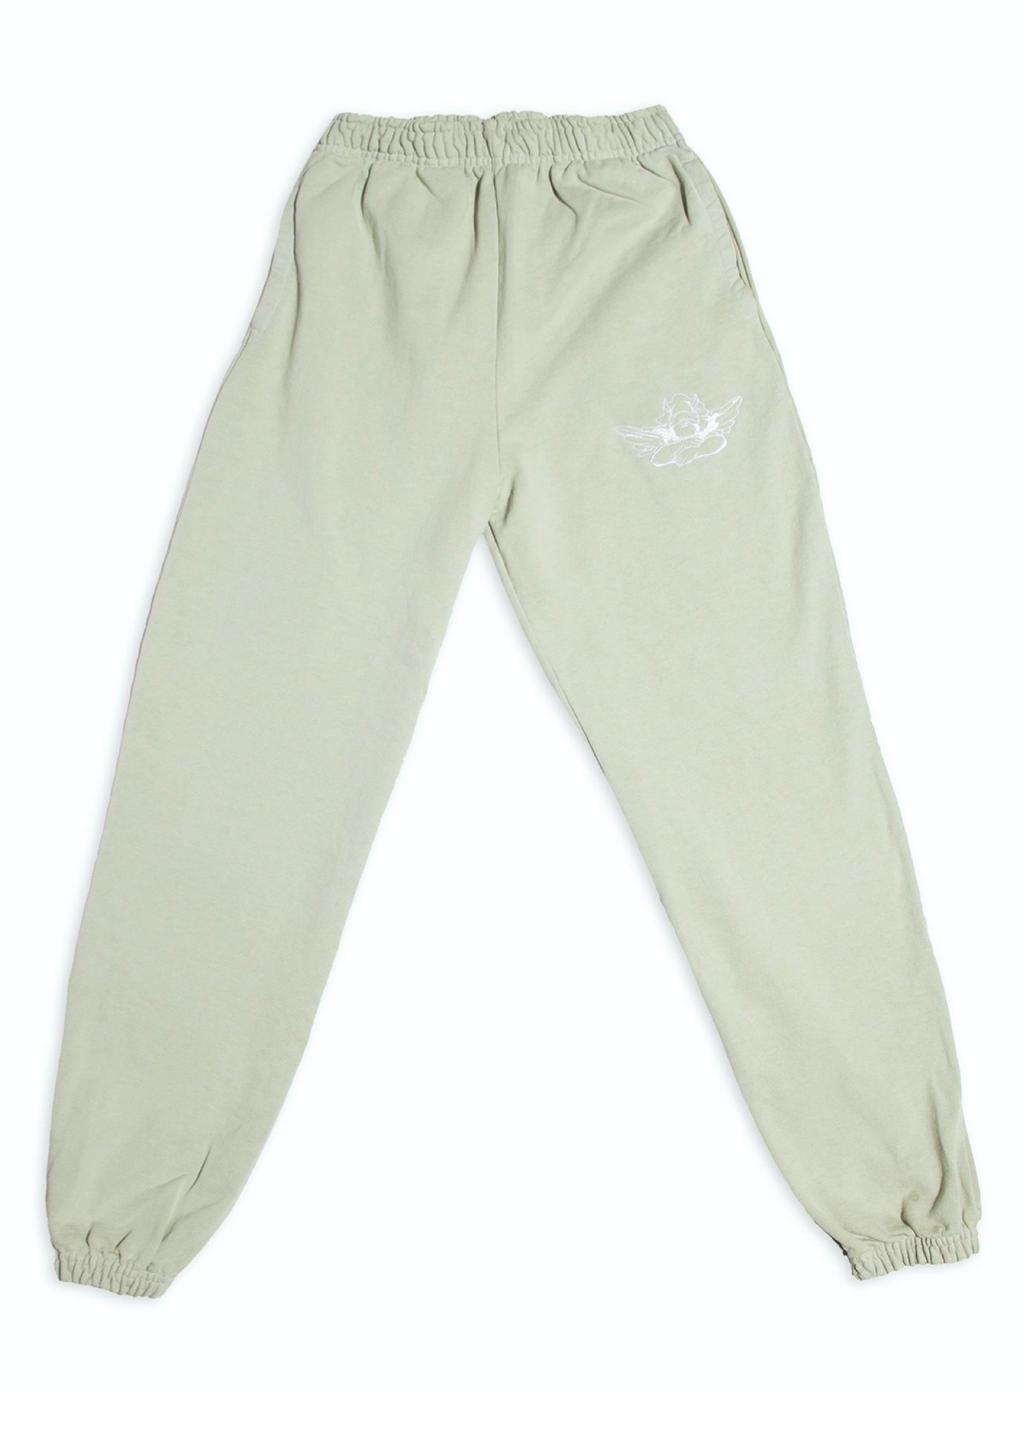 Boys Lie I Choose Me Sweatpants - Rock N Rags